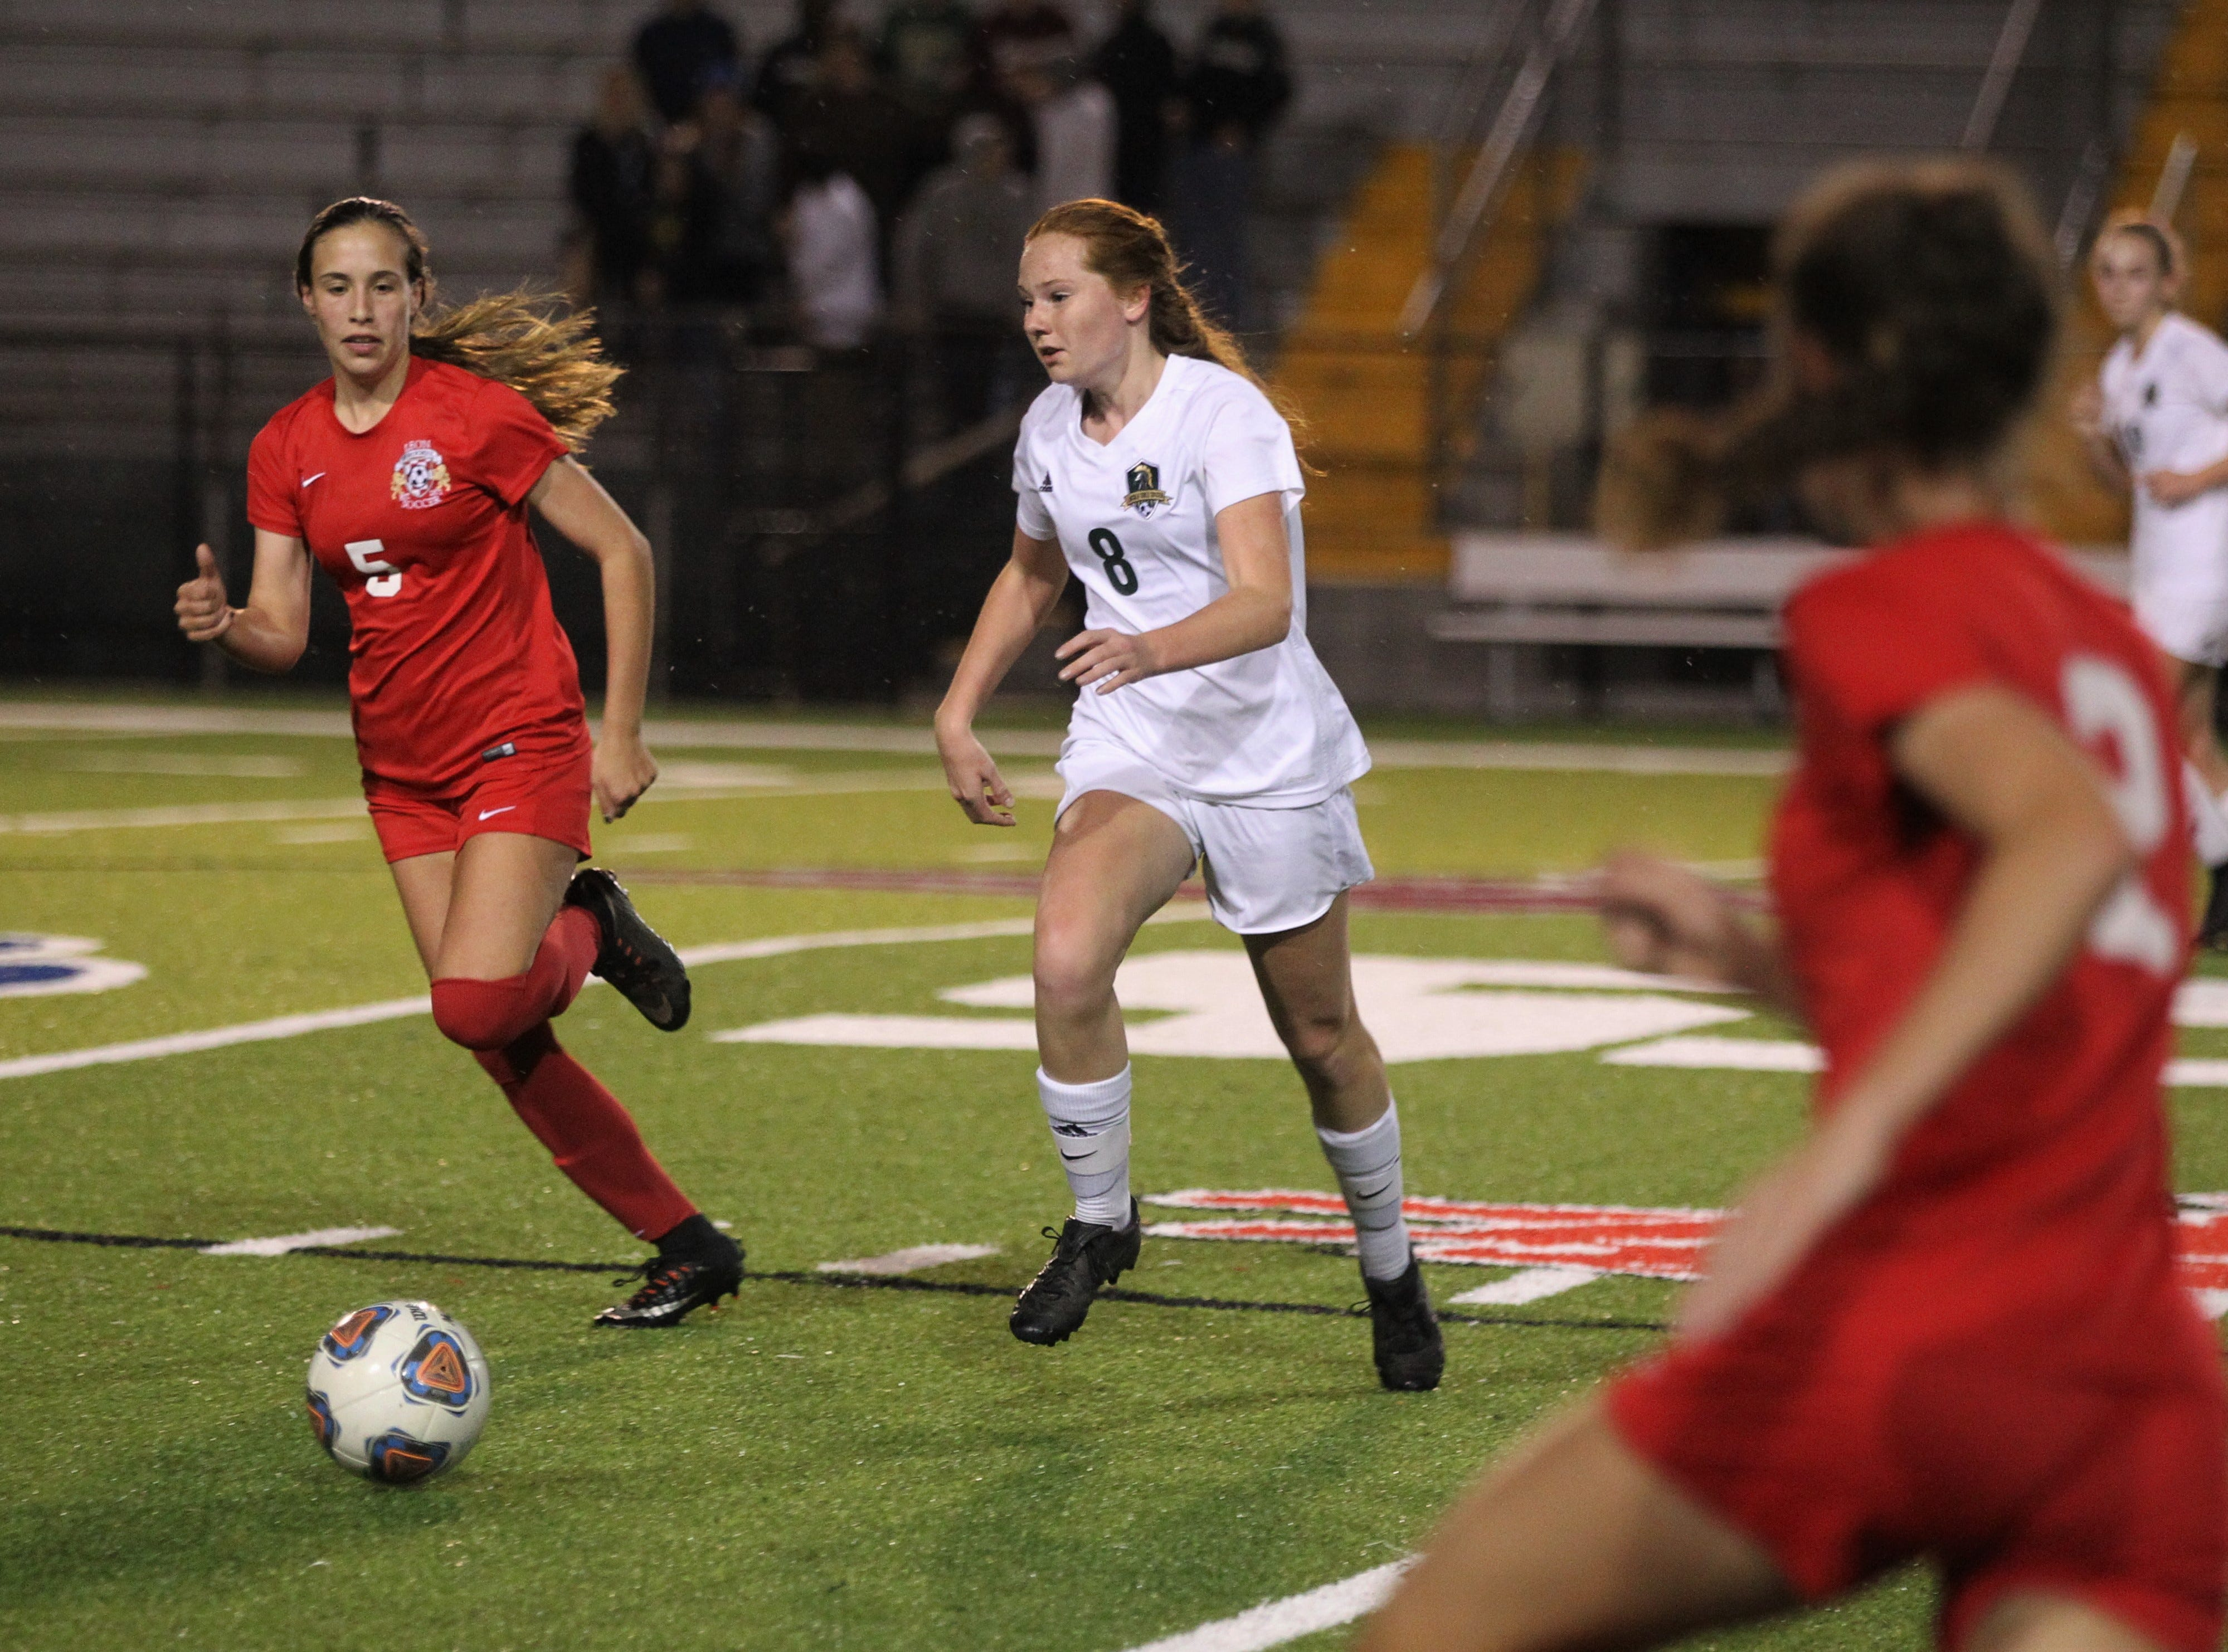 Lincoln's Rylee French dribbles through the midfield as Leon's girls soccer team beat Lincoln in the District 2-4A championship on Feb. 1, 2019.